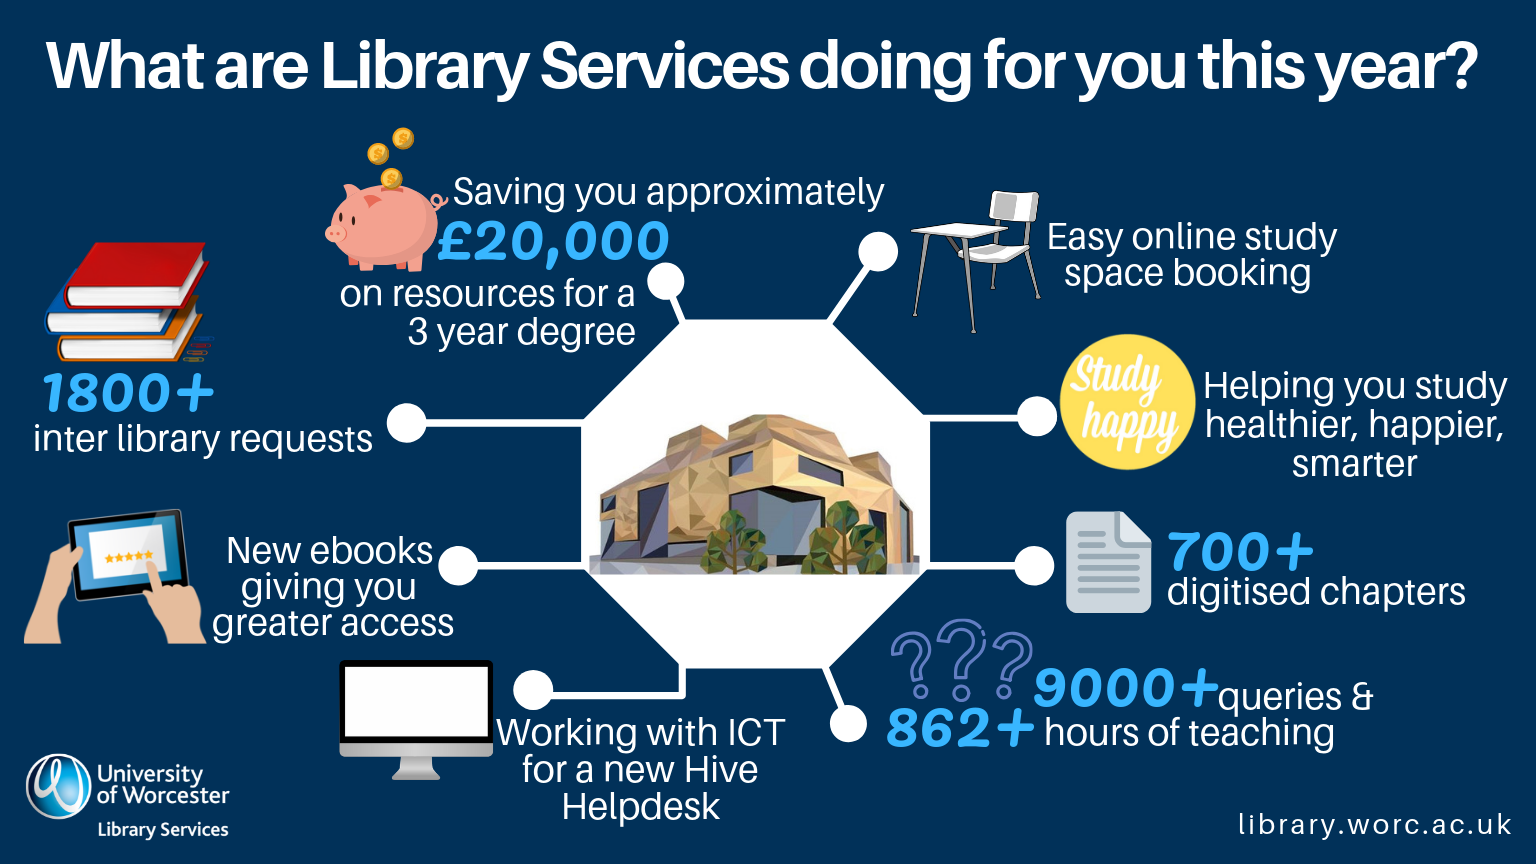 What are Library Services doing for you this year? 1800+ inter library requests; saving you approx £20000 on resources for a 3 year degree; easy online study space booking; helping you study healthier, happier, smarter; 700+ digitised chapters; 9000+ queries; 862+ hours of teaching; working with ICT for a new Hive Helpdesk; new ebooks giving you greater access